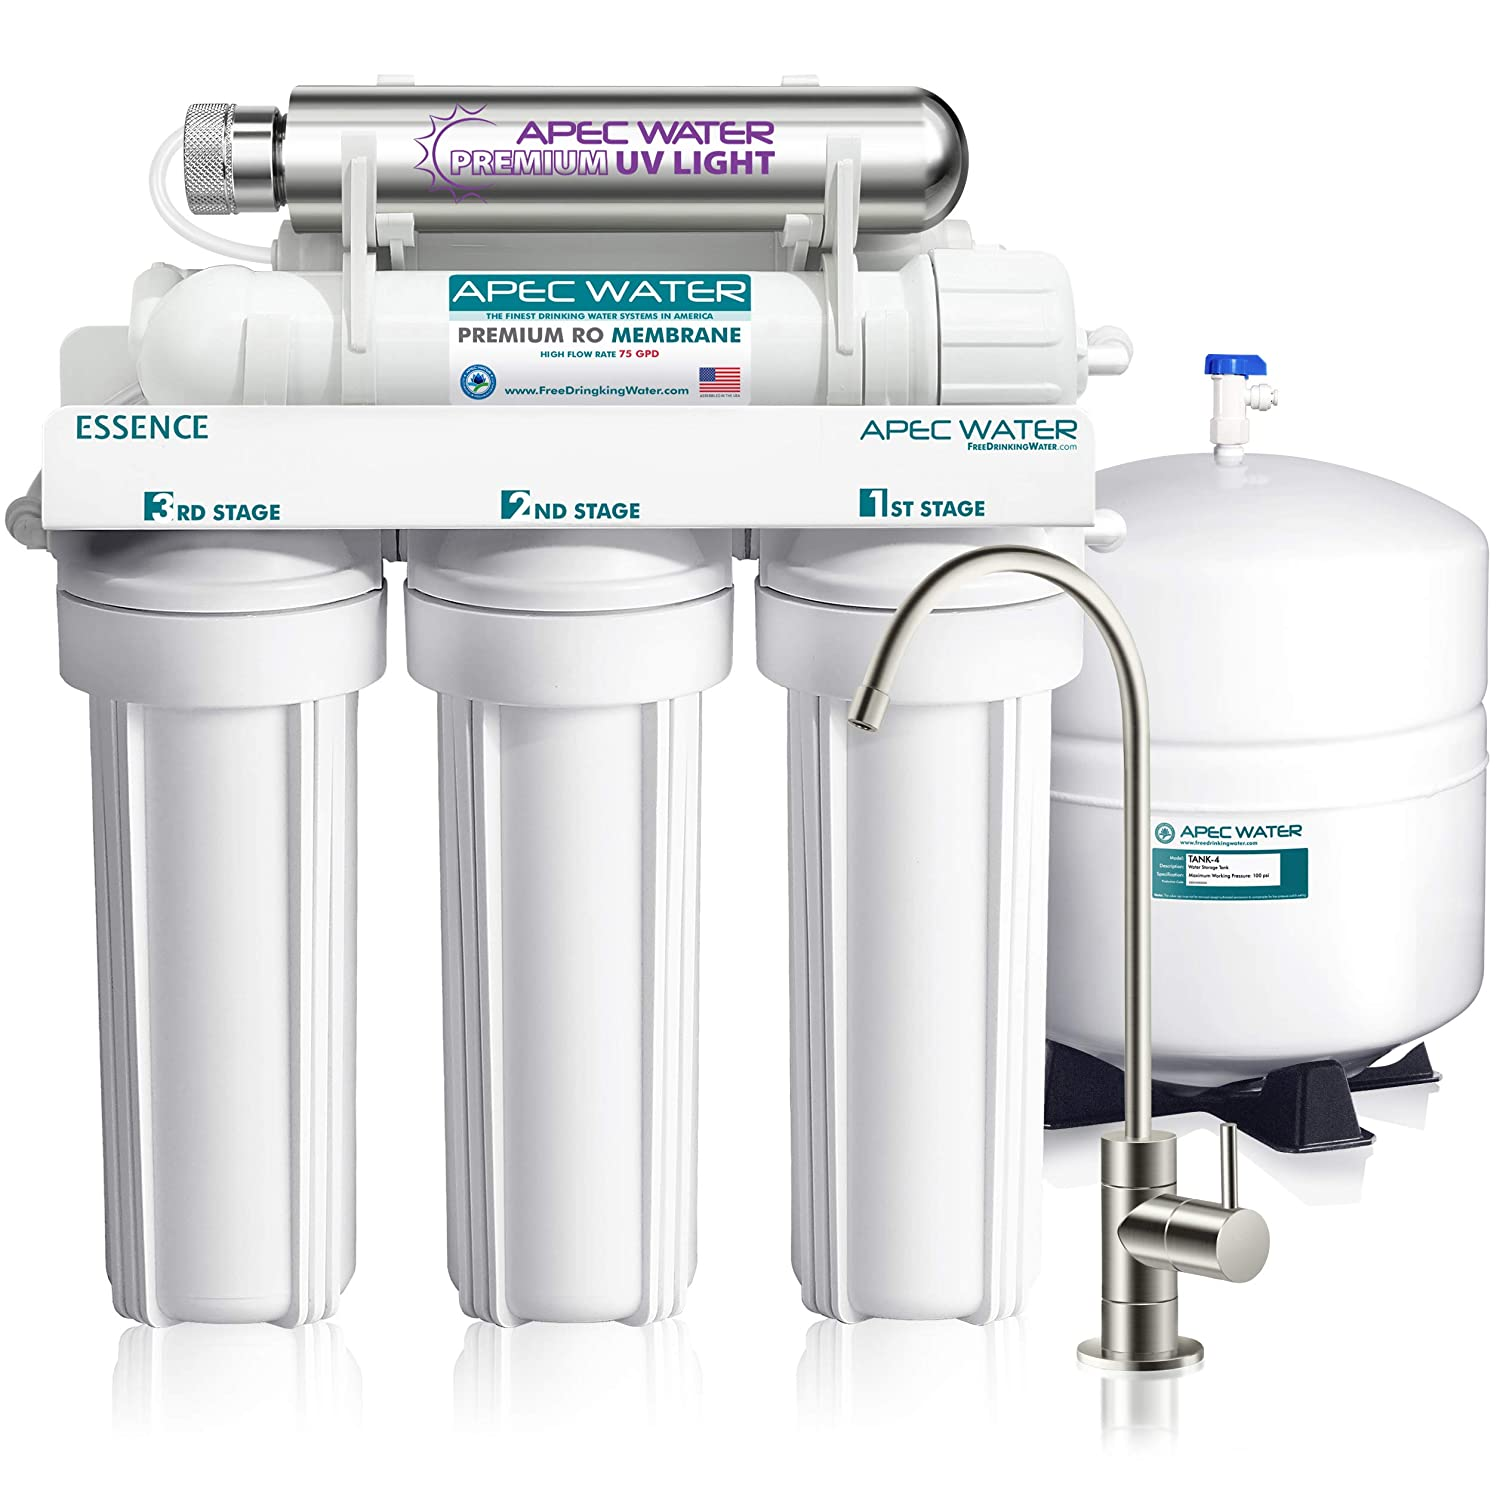 APEC Water Systems ROES-UV75-SS Essence Series Top Tier UV Violet Sterilizer 75 GPD 6-Stage Ultra Safe Reverse Osmosis Drinking Water Filter System, white